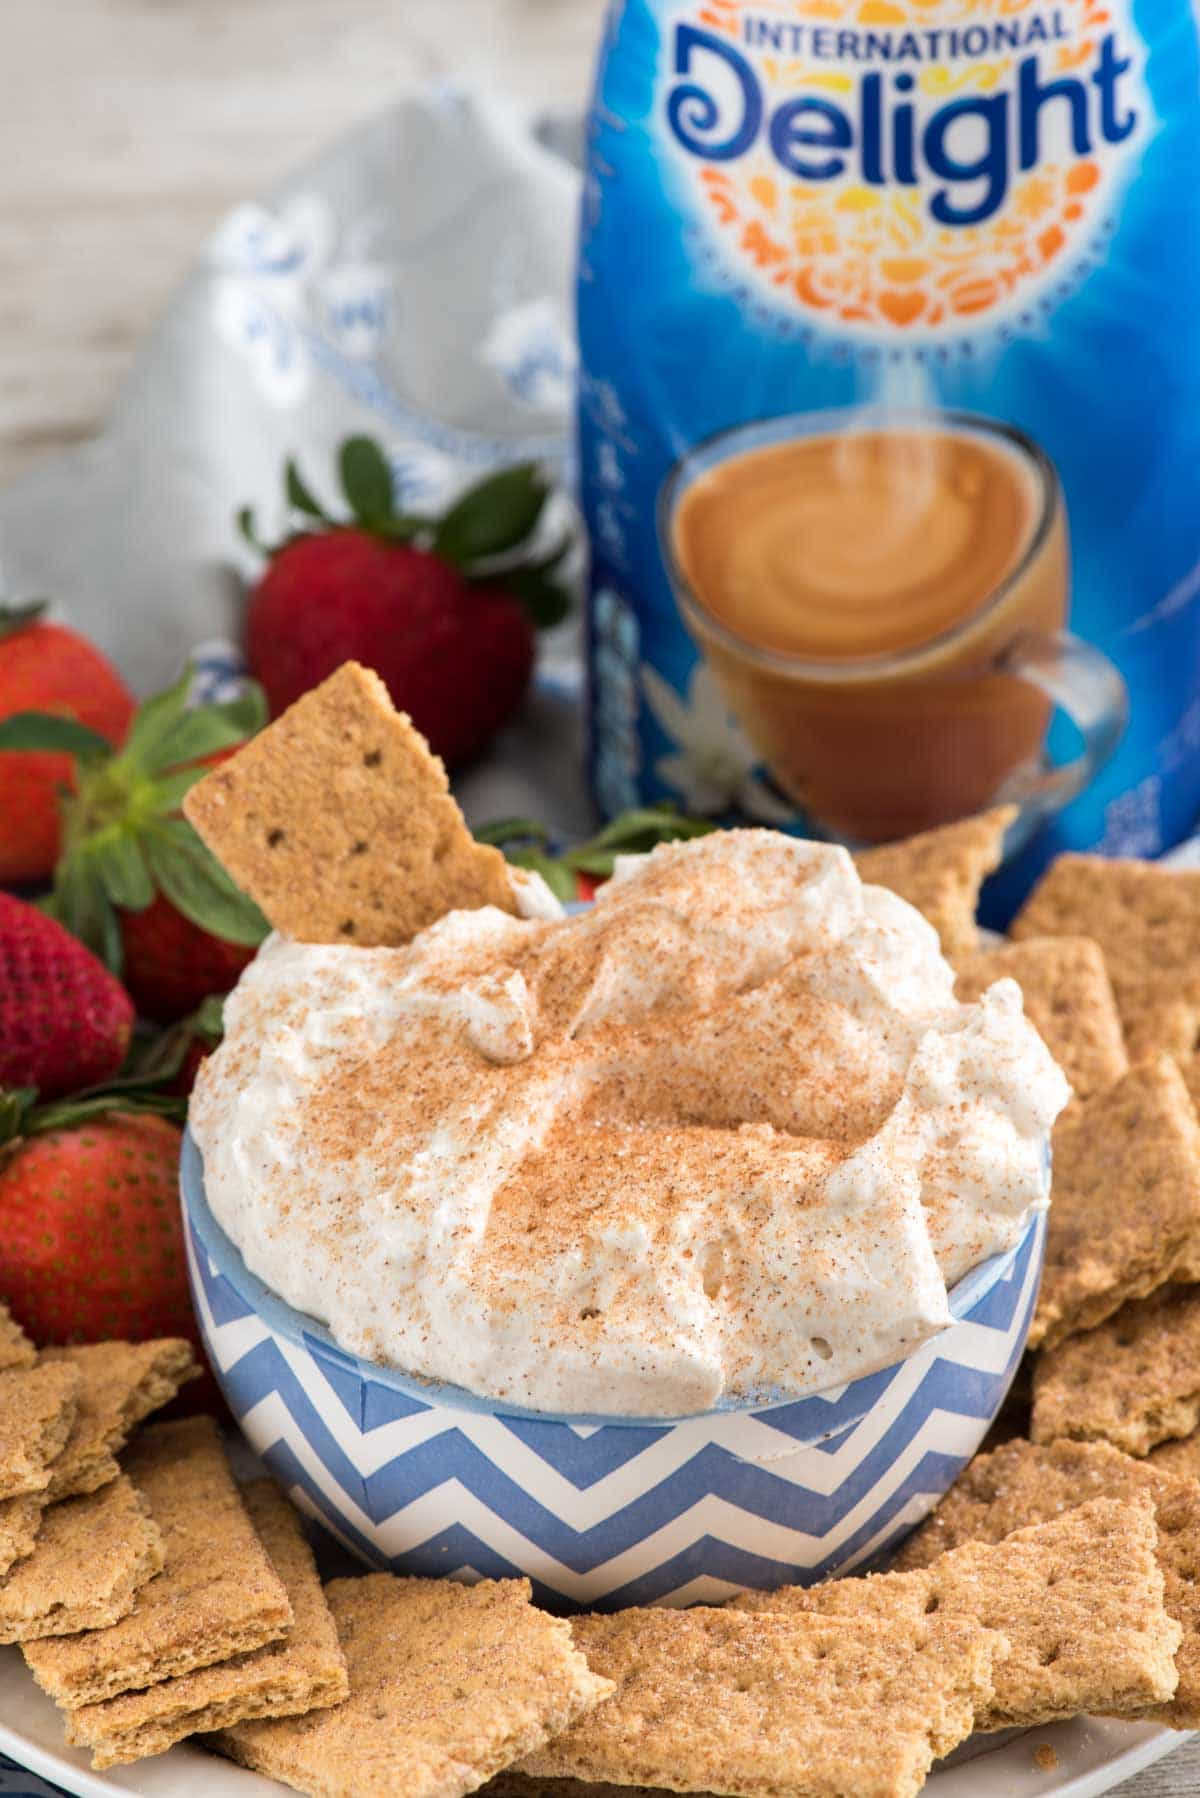 Churro Cheesecake Dip - an easy way to make no-bake cheesecake dip full of cinnamon sugar churro flavor! This is perfect for parties or an easy dessert; we loved it!